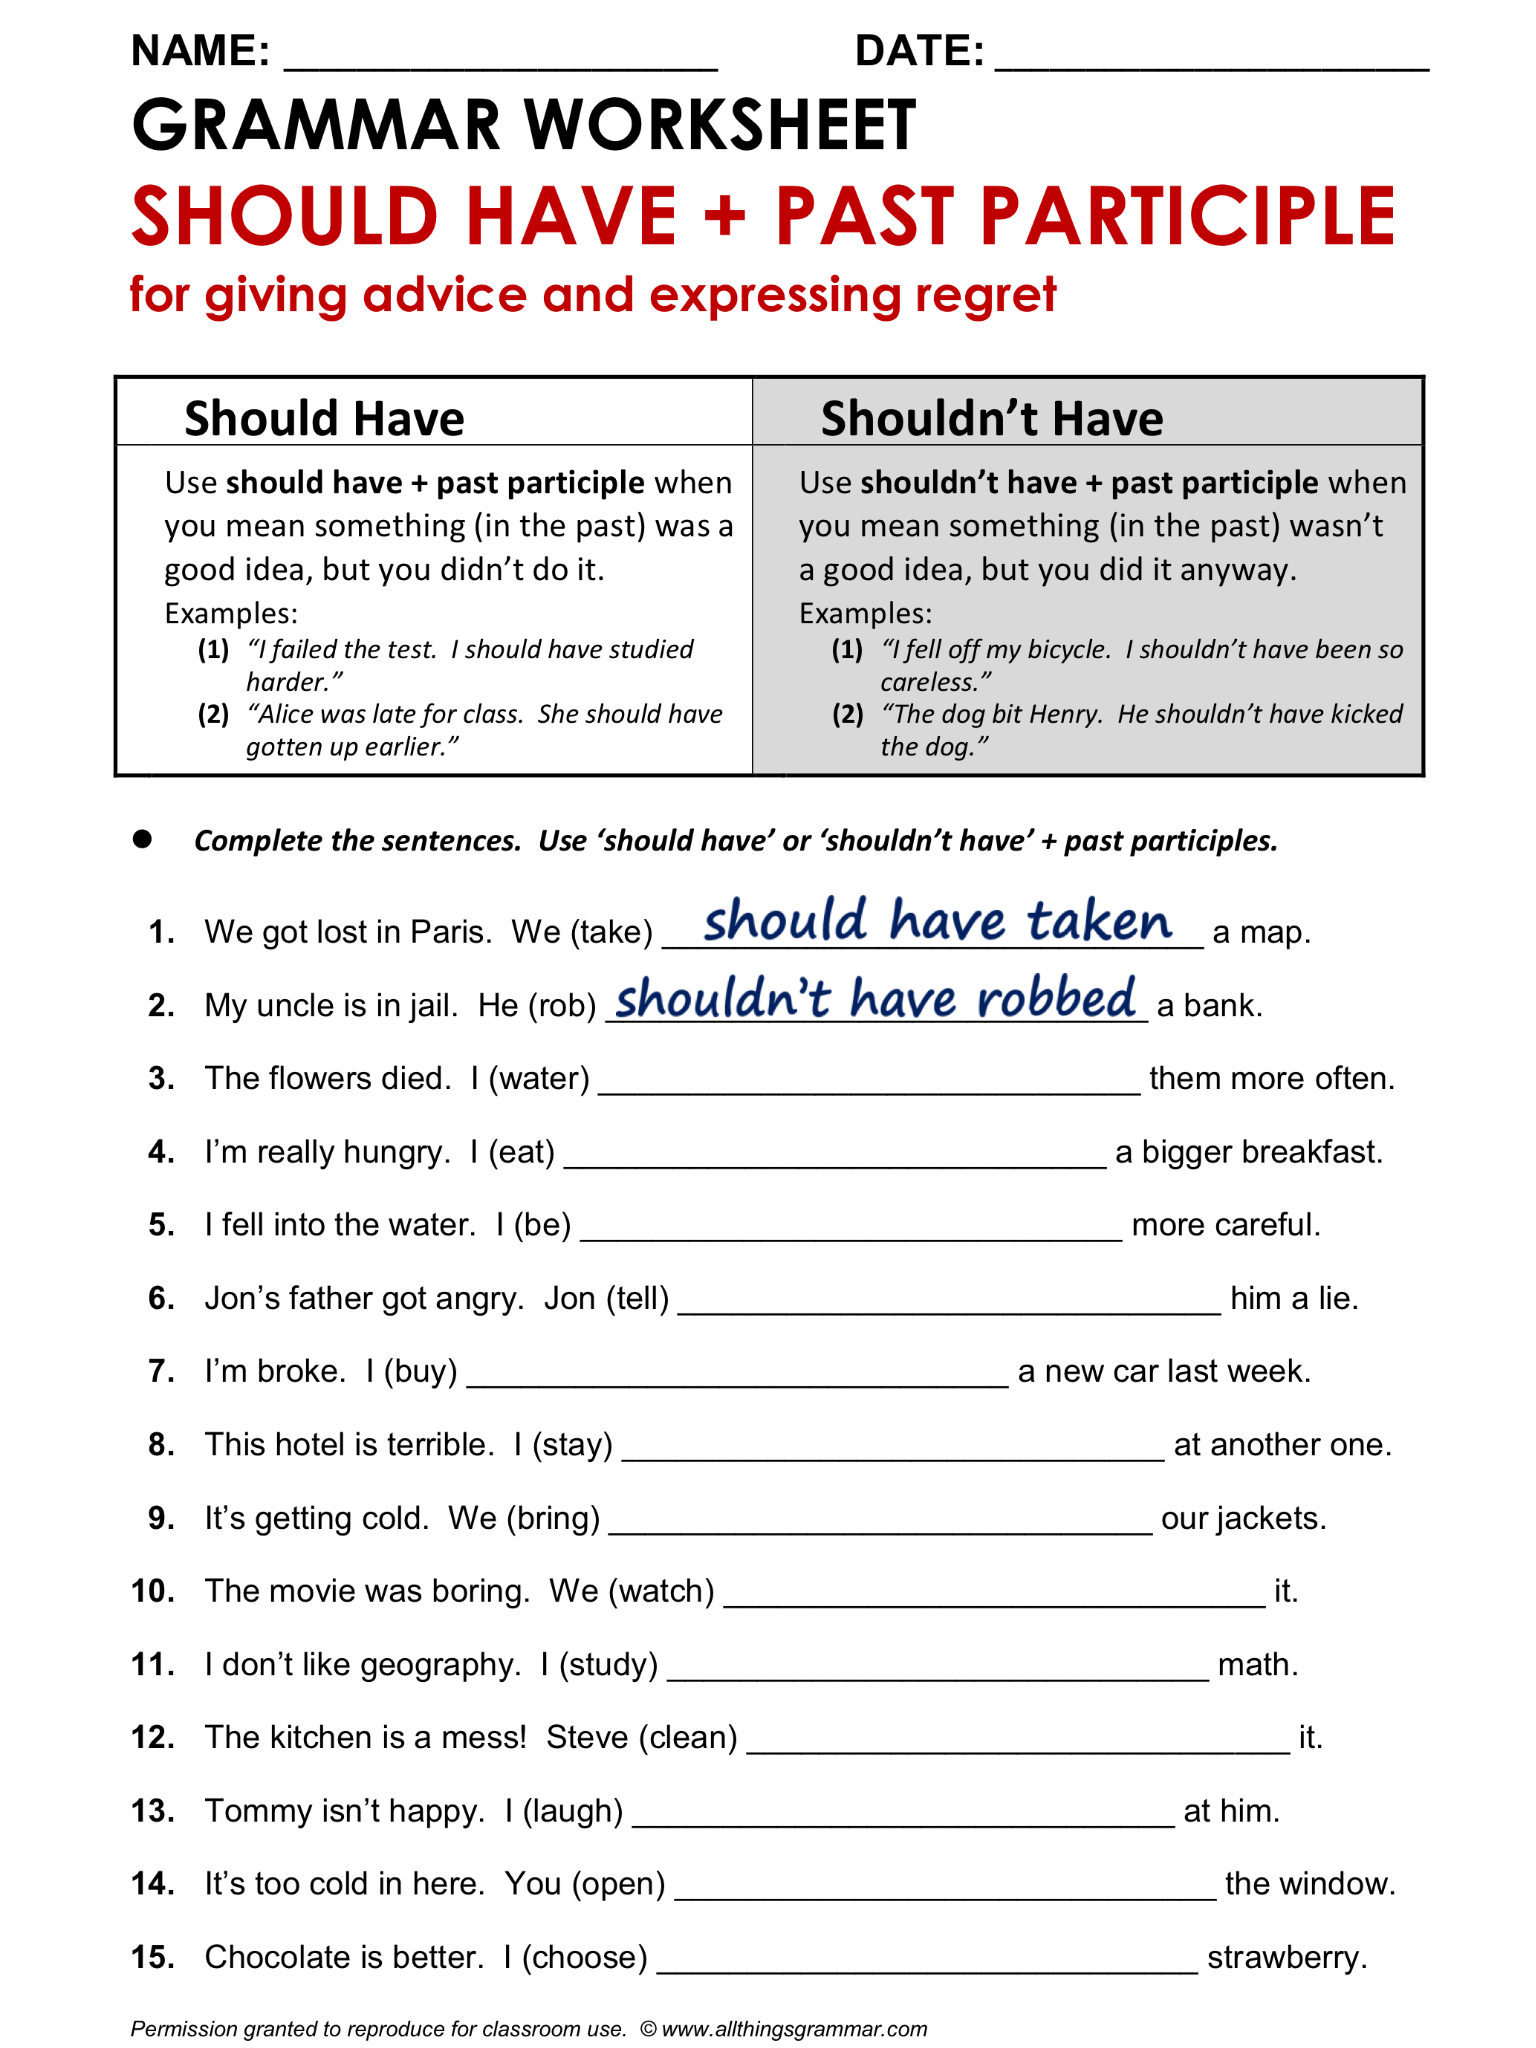 English Grammar Worksheet, Should Have + Past Participle 1/2. http ...